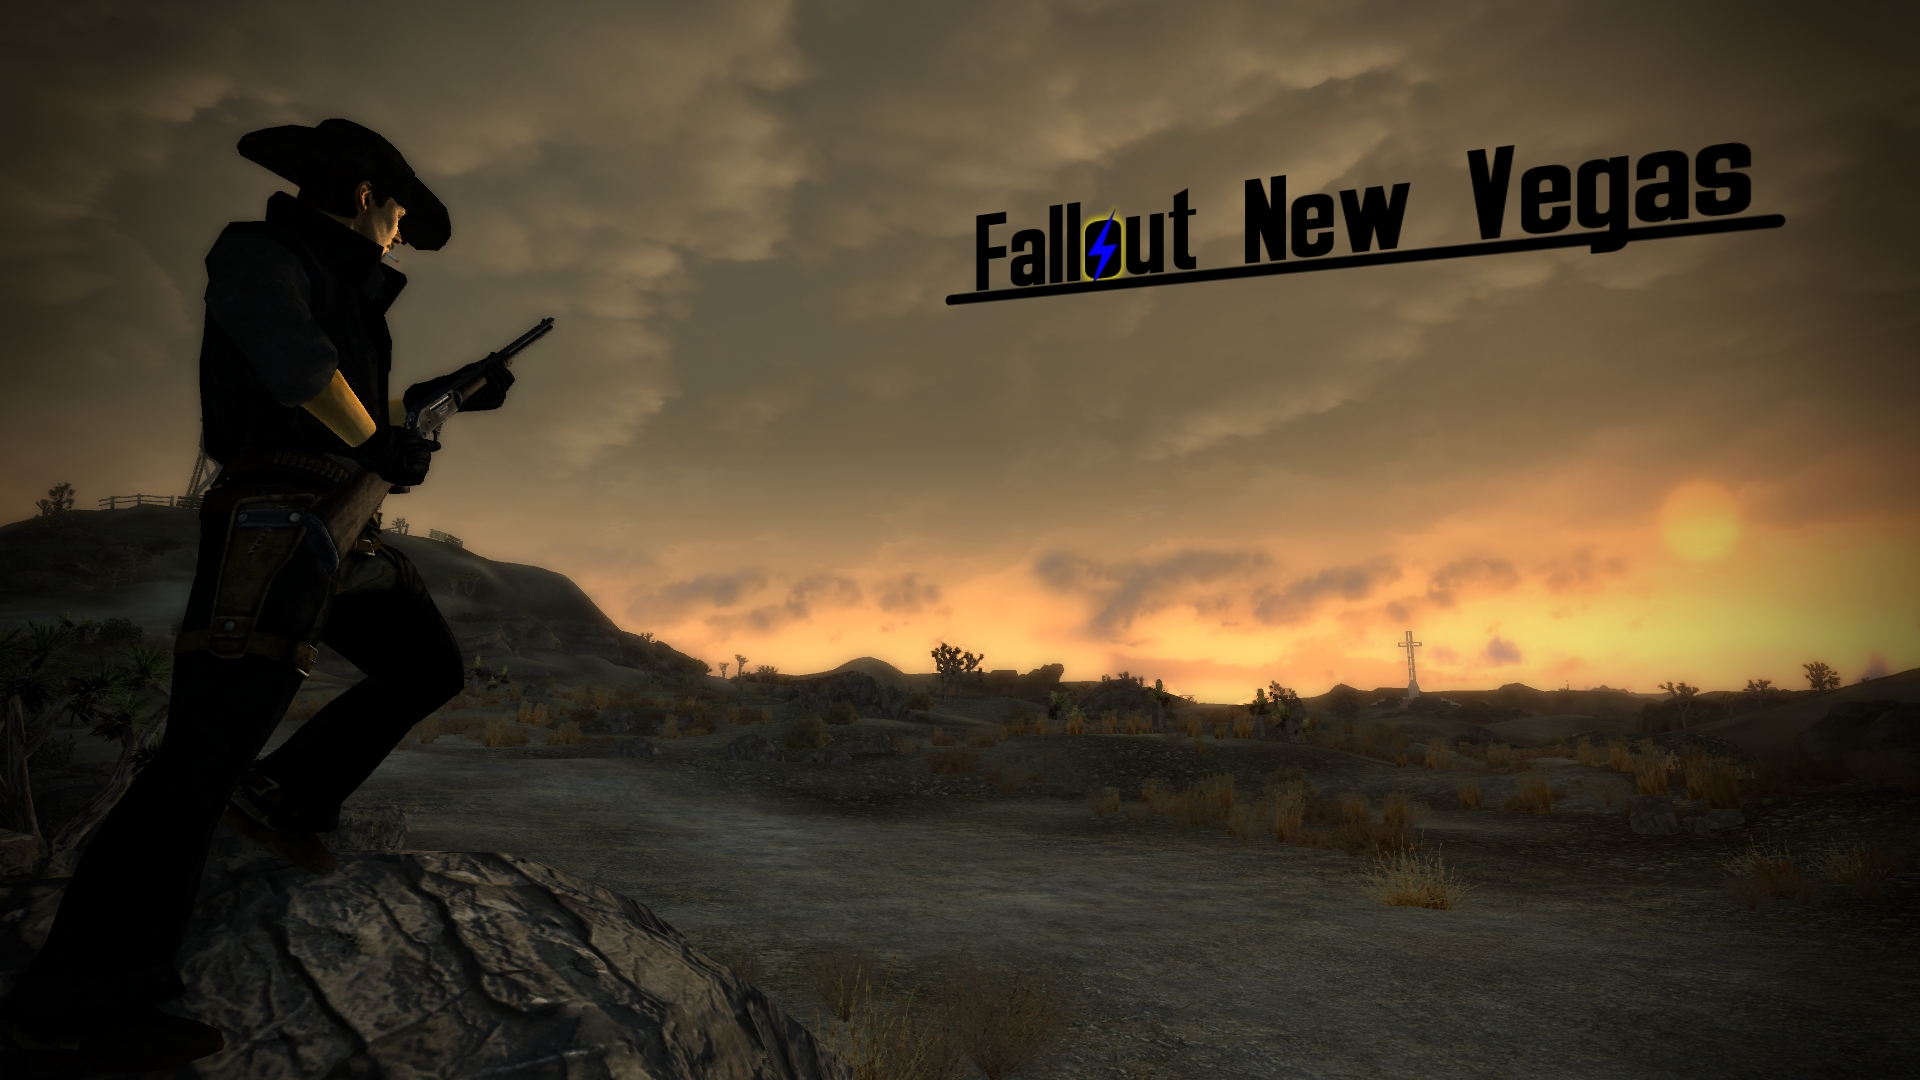 Cowboy New Vegas Wallpaper Underlined Text At Fallout New Vegas